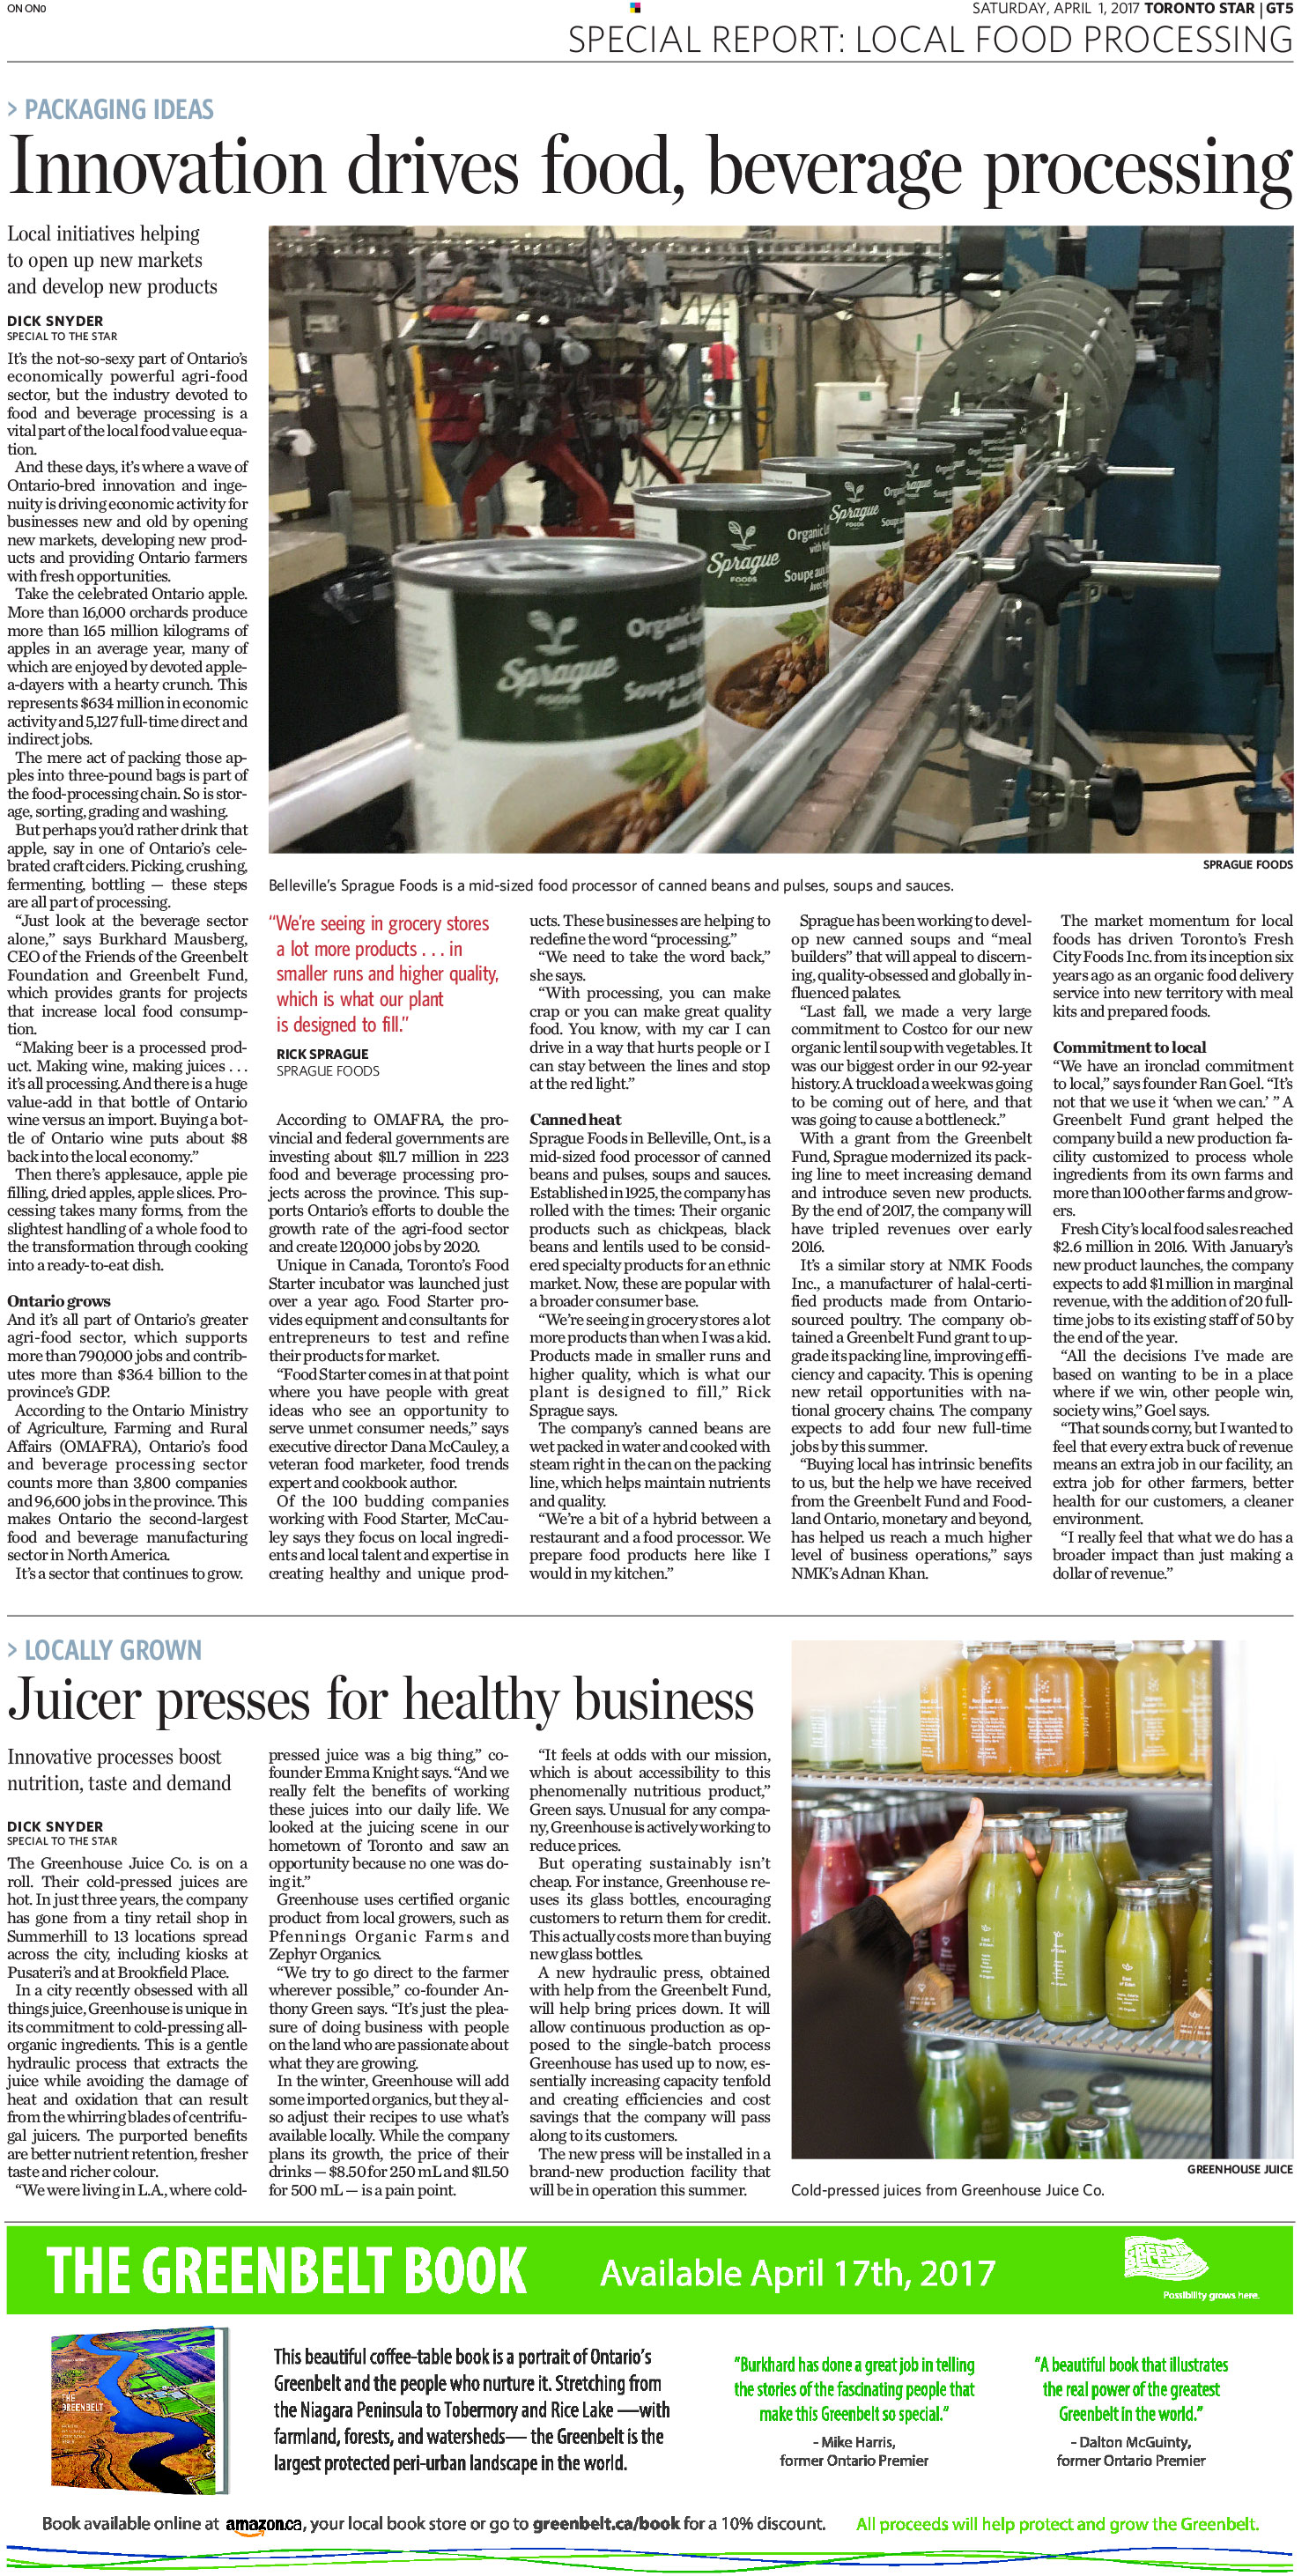 Toronto Star Features Local Food Processing